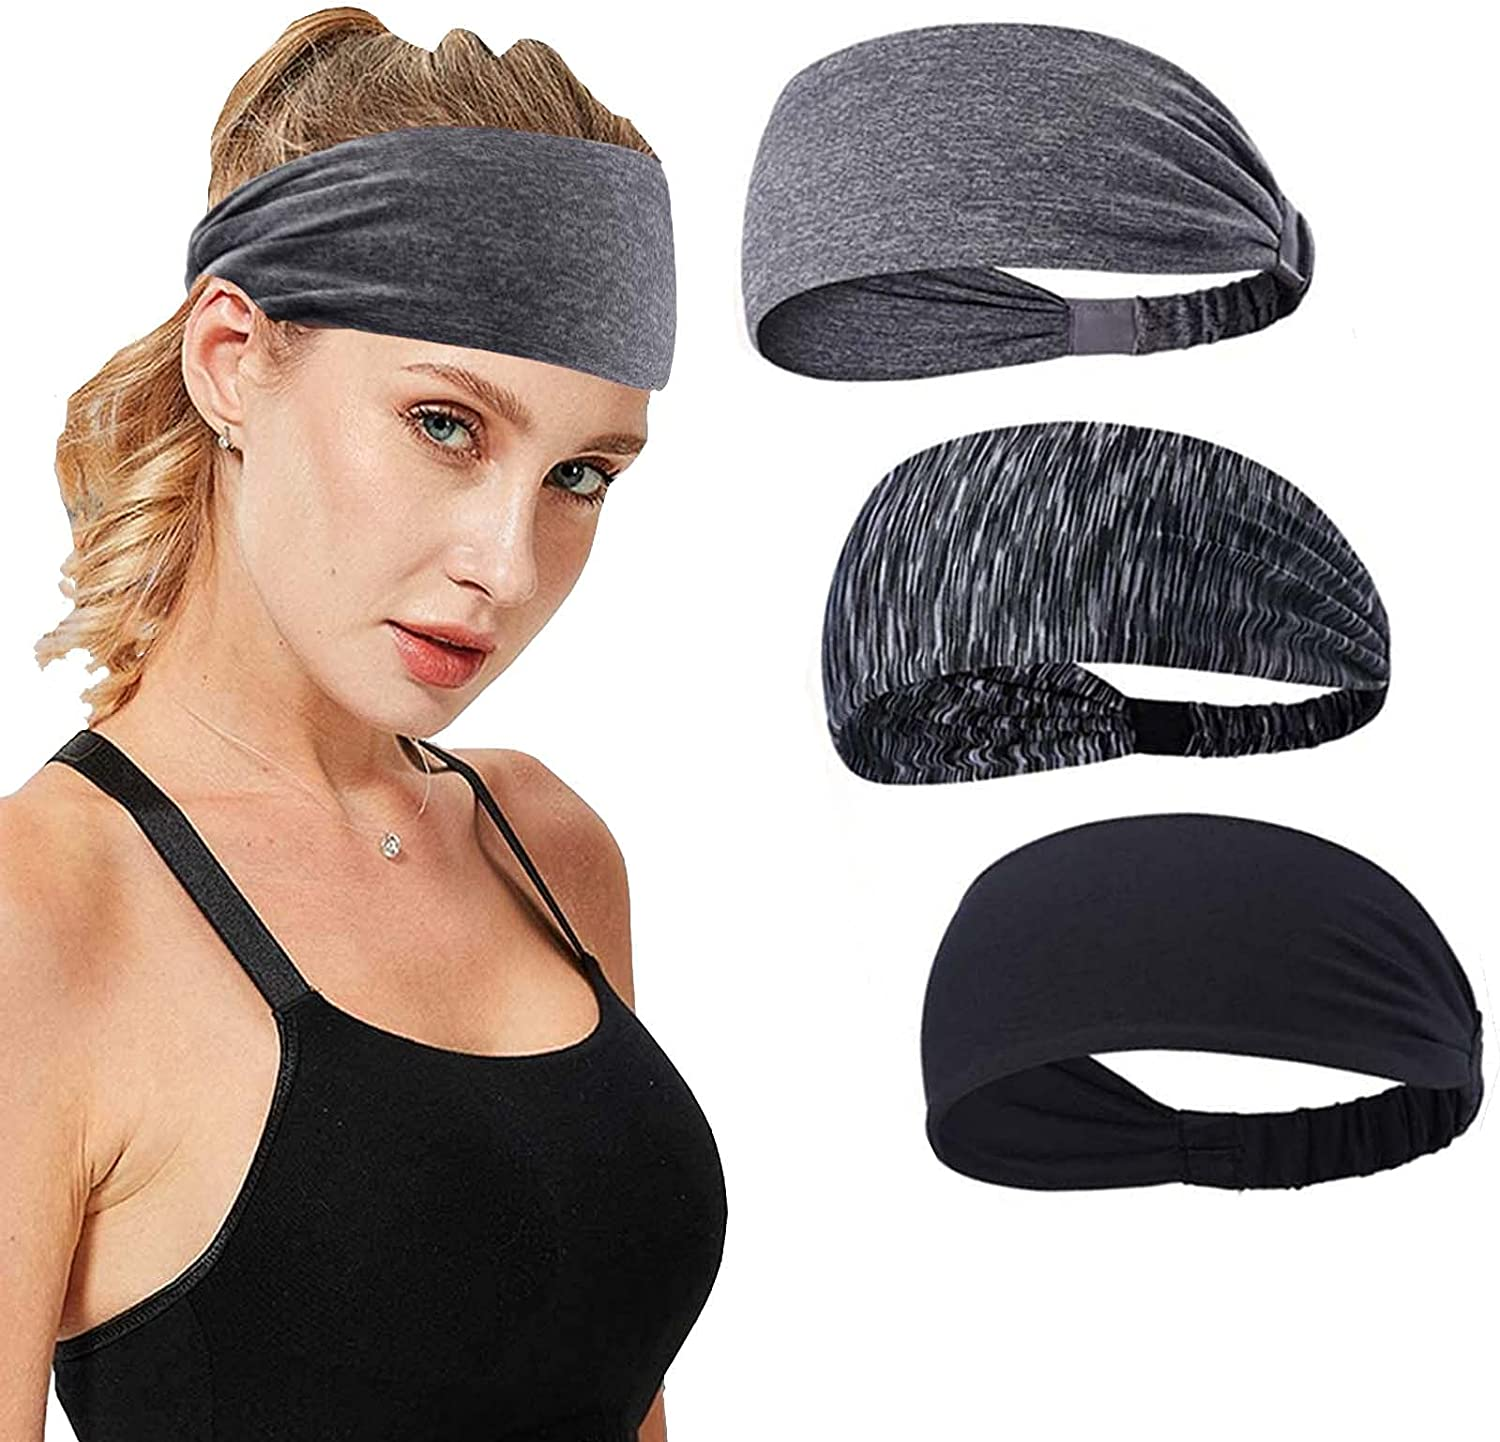 Hjiaruiky Workout Max 73% OFF Headbands for Women Athletic Men Special price Headband Mois